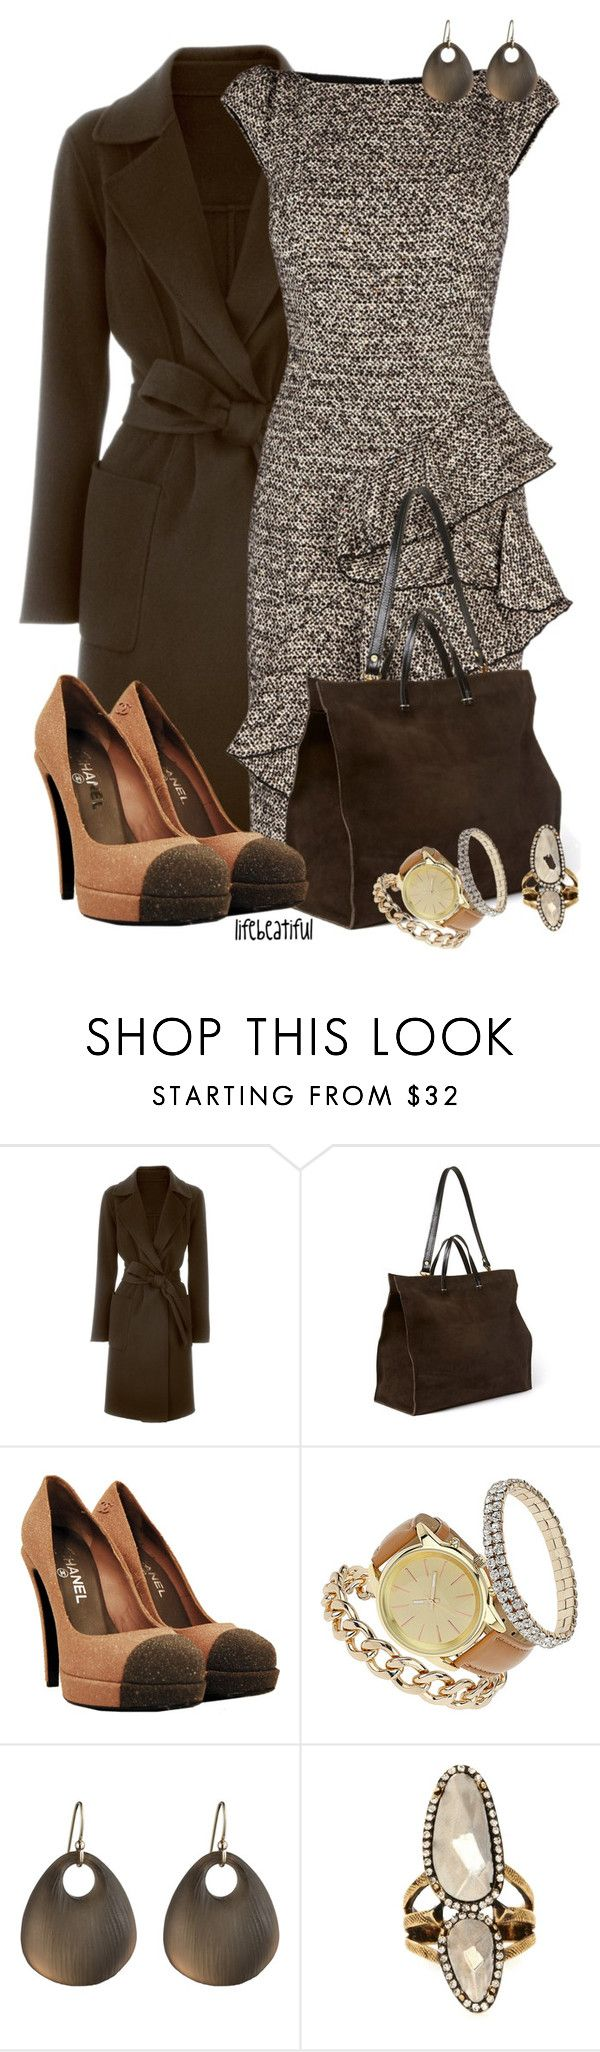 """""""High Powered Business Meeting Contest #1"""" by lifebeautiful ❤ liked on Polyvore featuring IRIS VON ARNIM, Clare V., Chanel, Miss Selfridge, Alexis Bittar and House of Harlow 1960"""